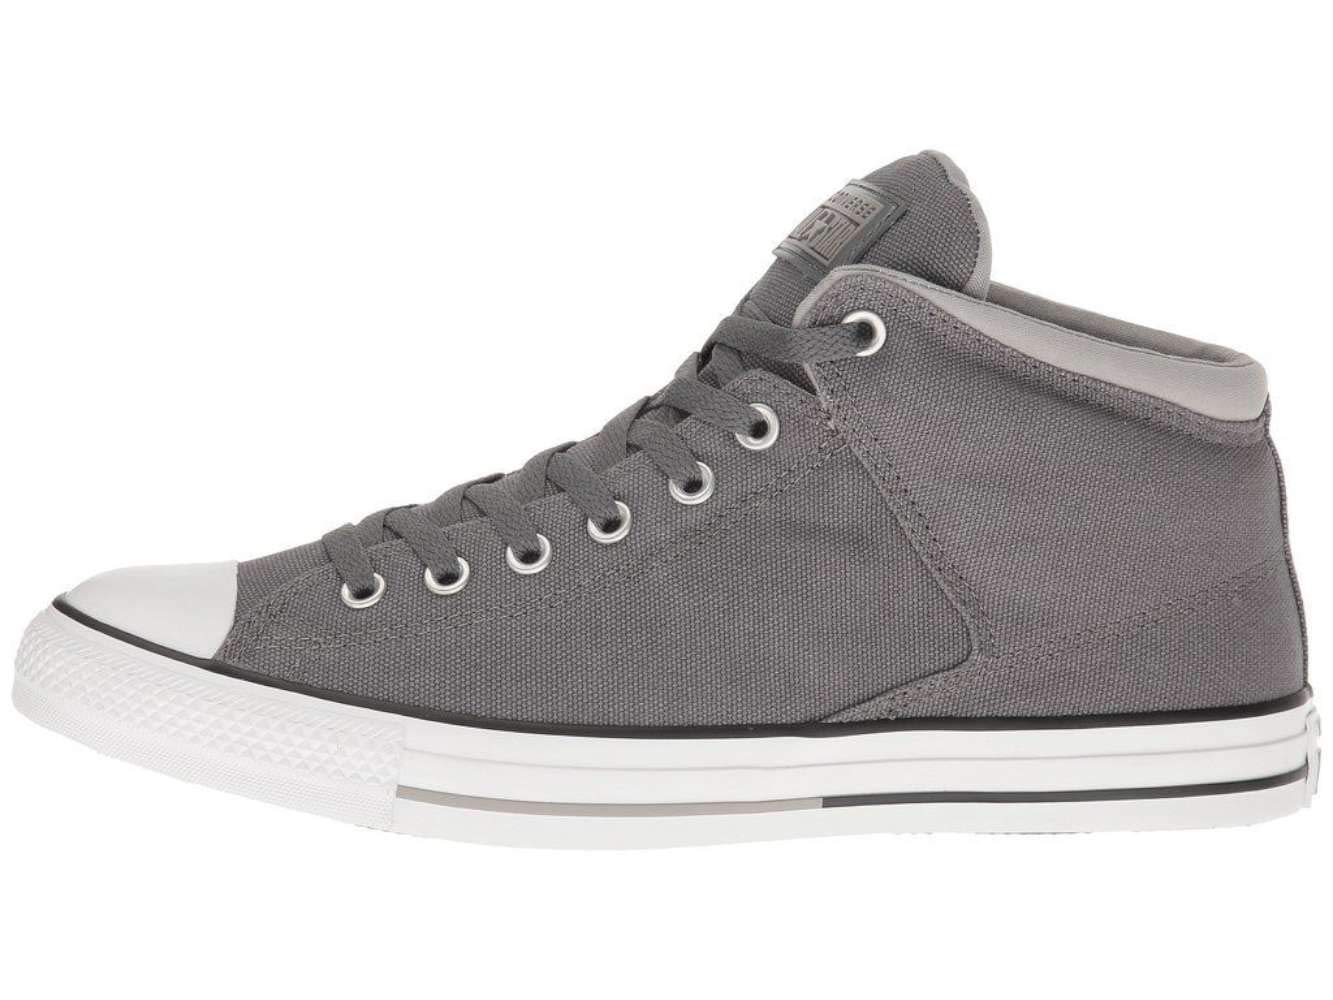 dbf44e4e8d26 Galleon - Converse Mens CTAS High Street Hight Top Lace Up